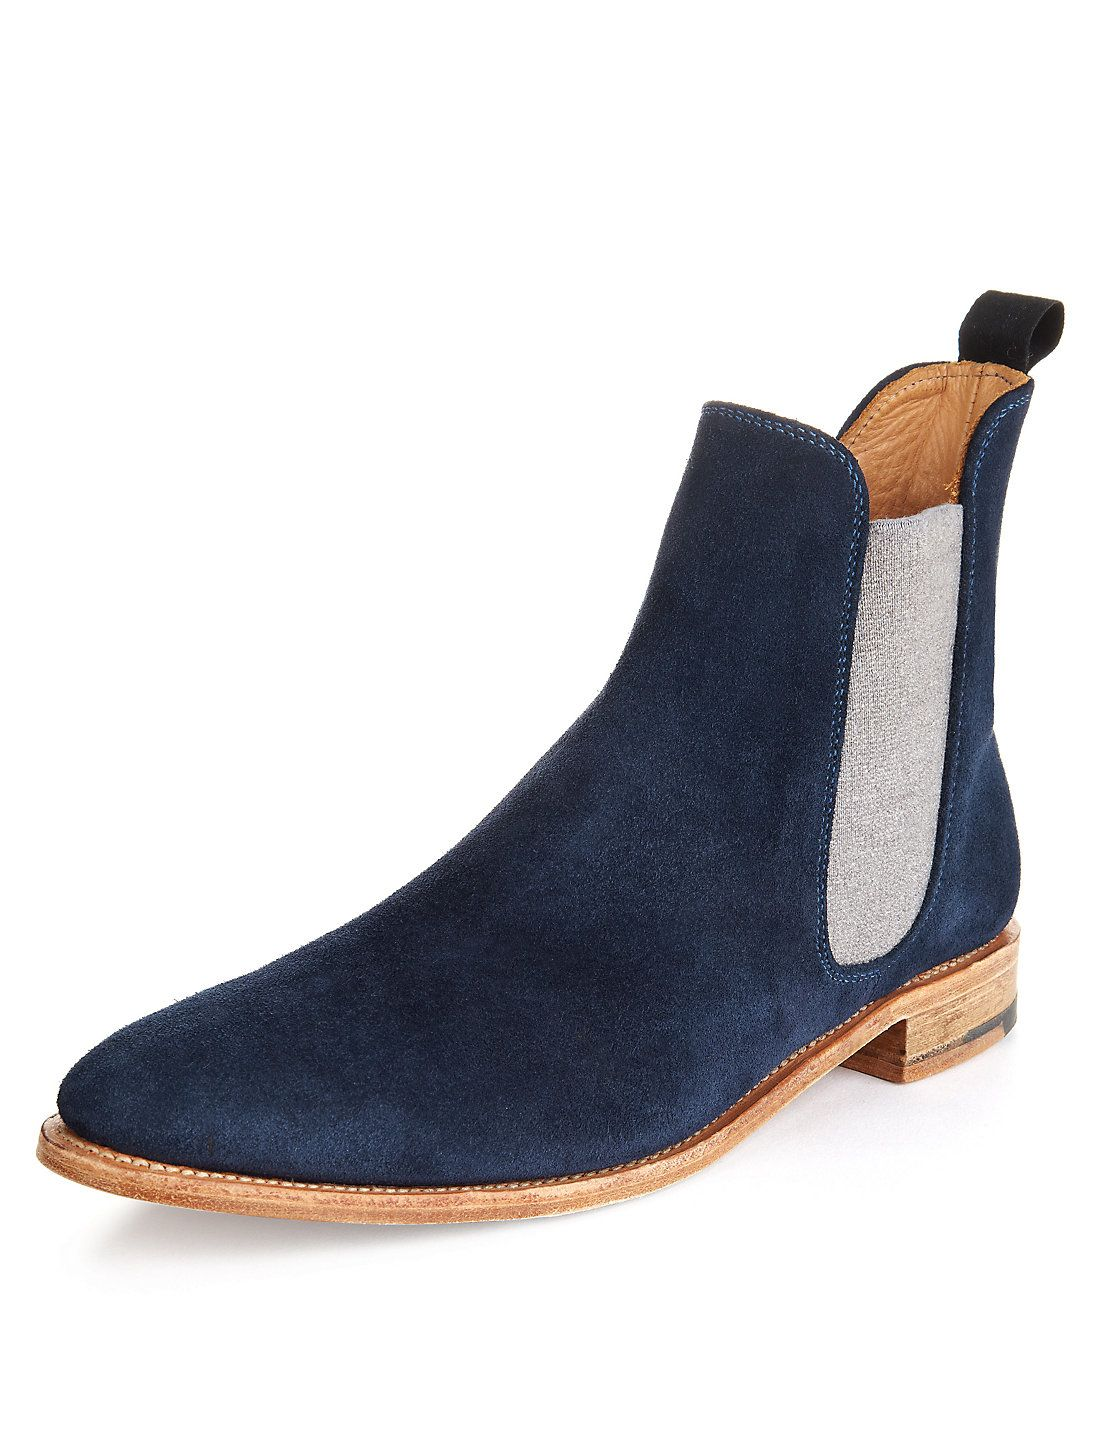 e2e703f94bbd9 Handmade Mens Chelsea Boots, Men Fashion Blue Ankle-high Suede ...